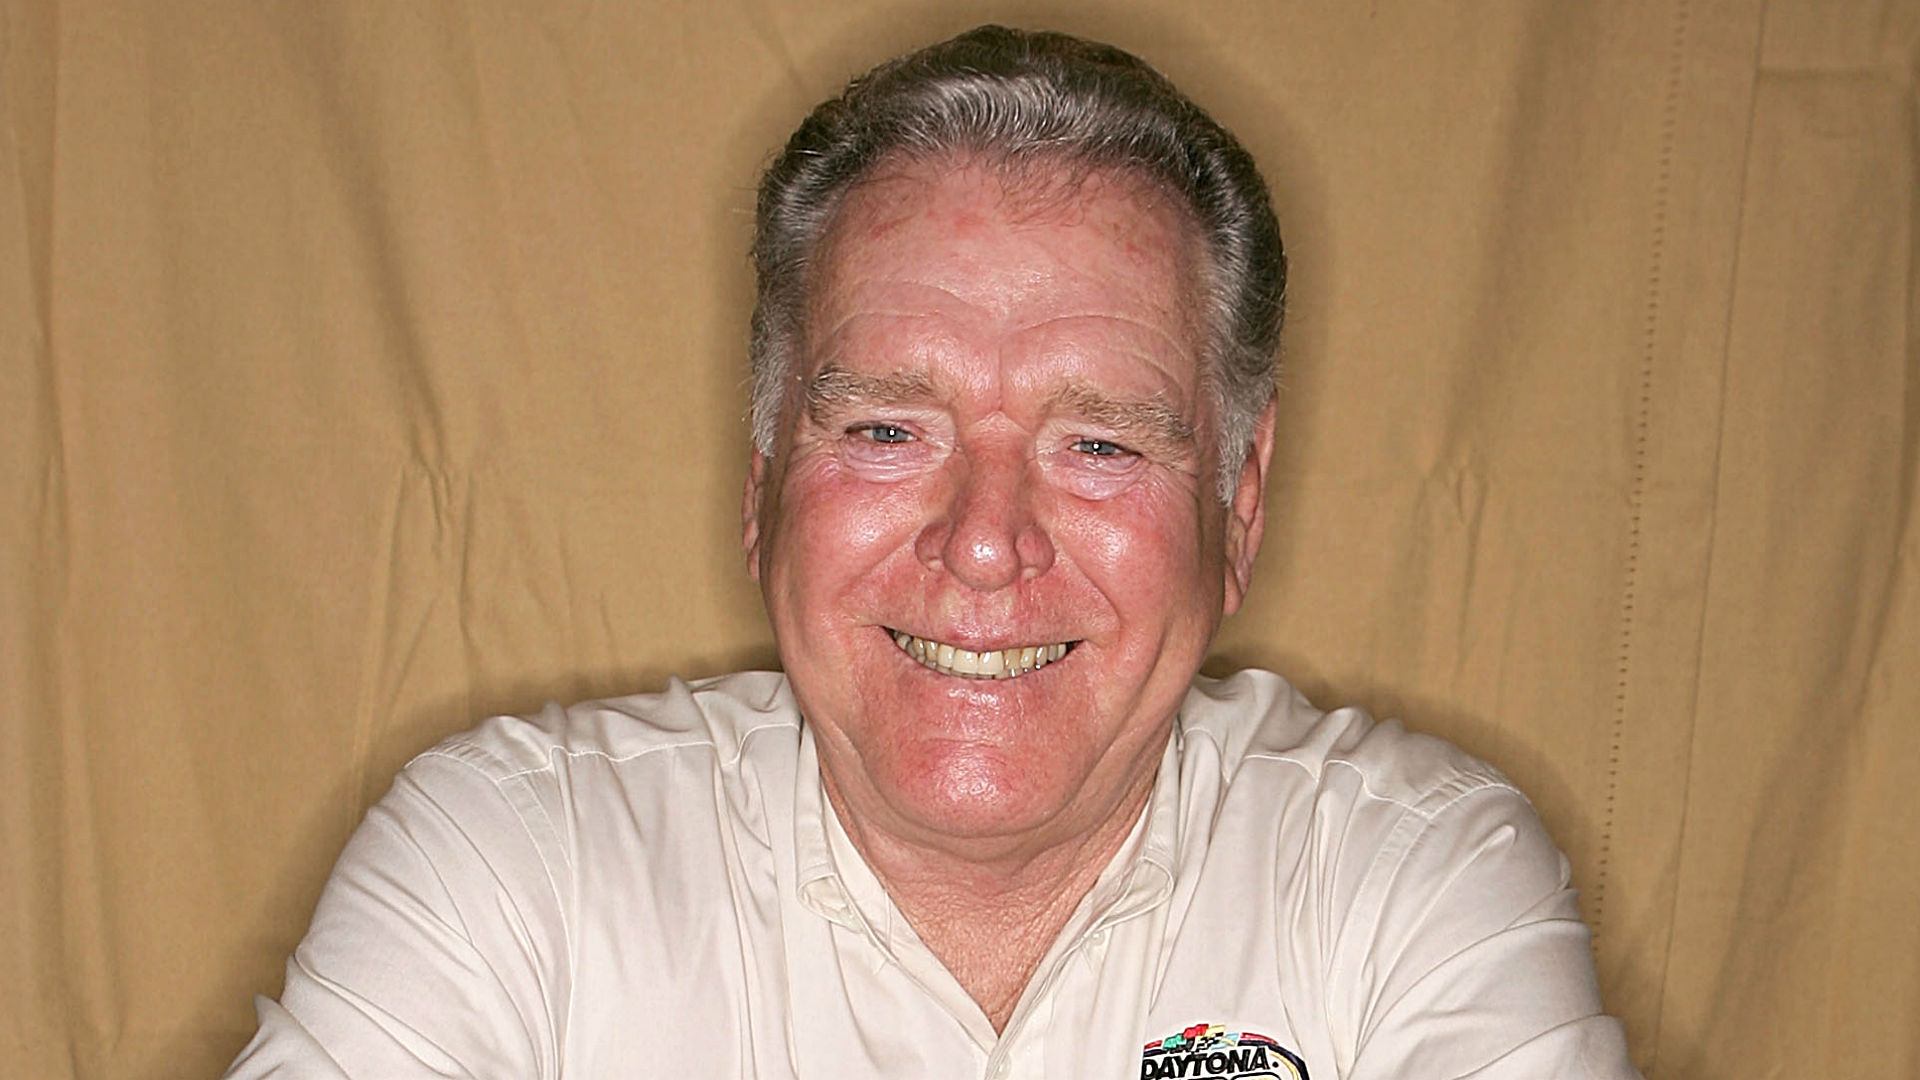 NASCAR great Buddy Baker says he has inoperable tumor in lung